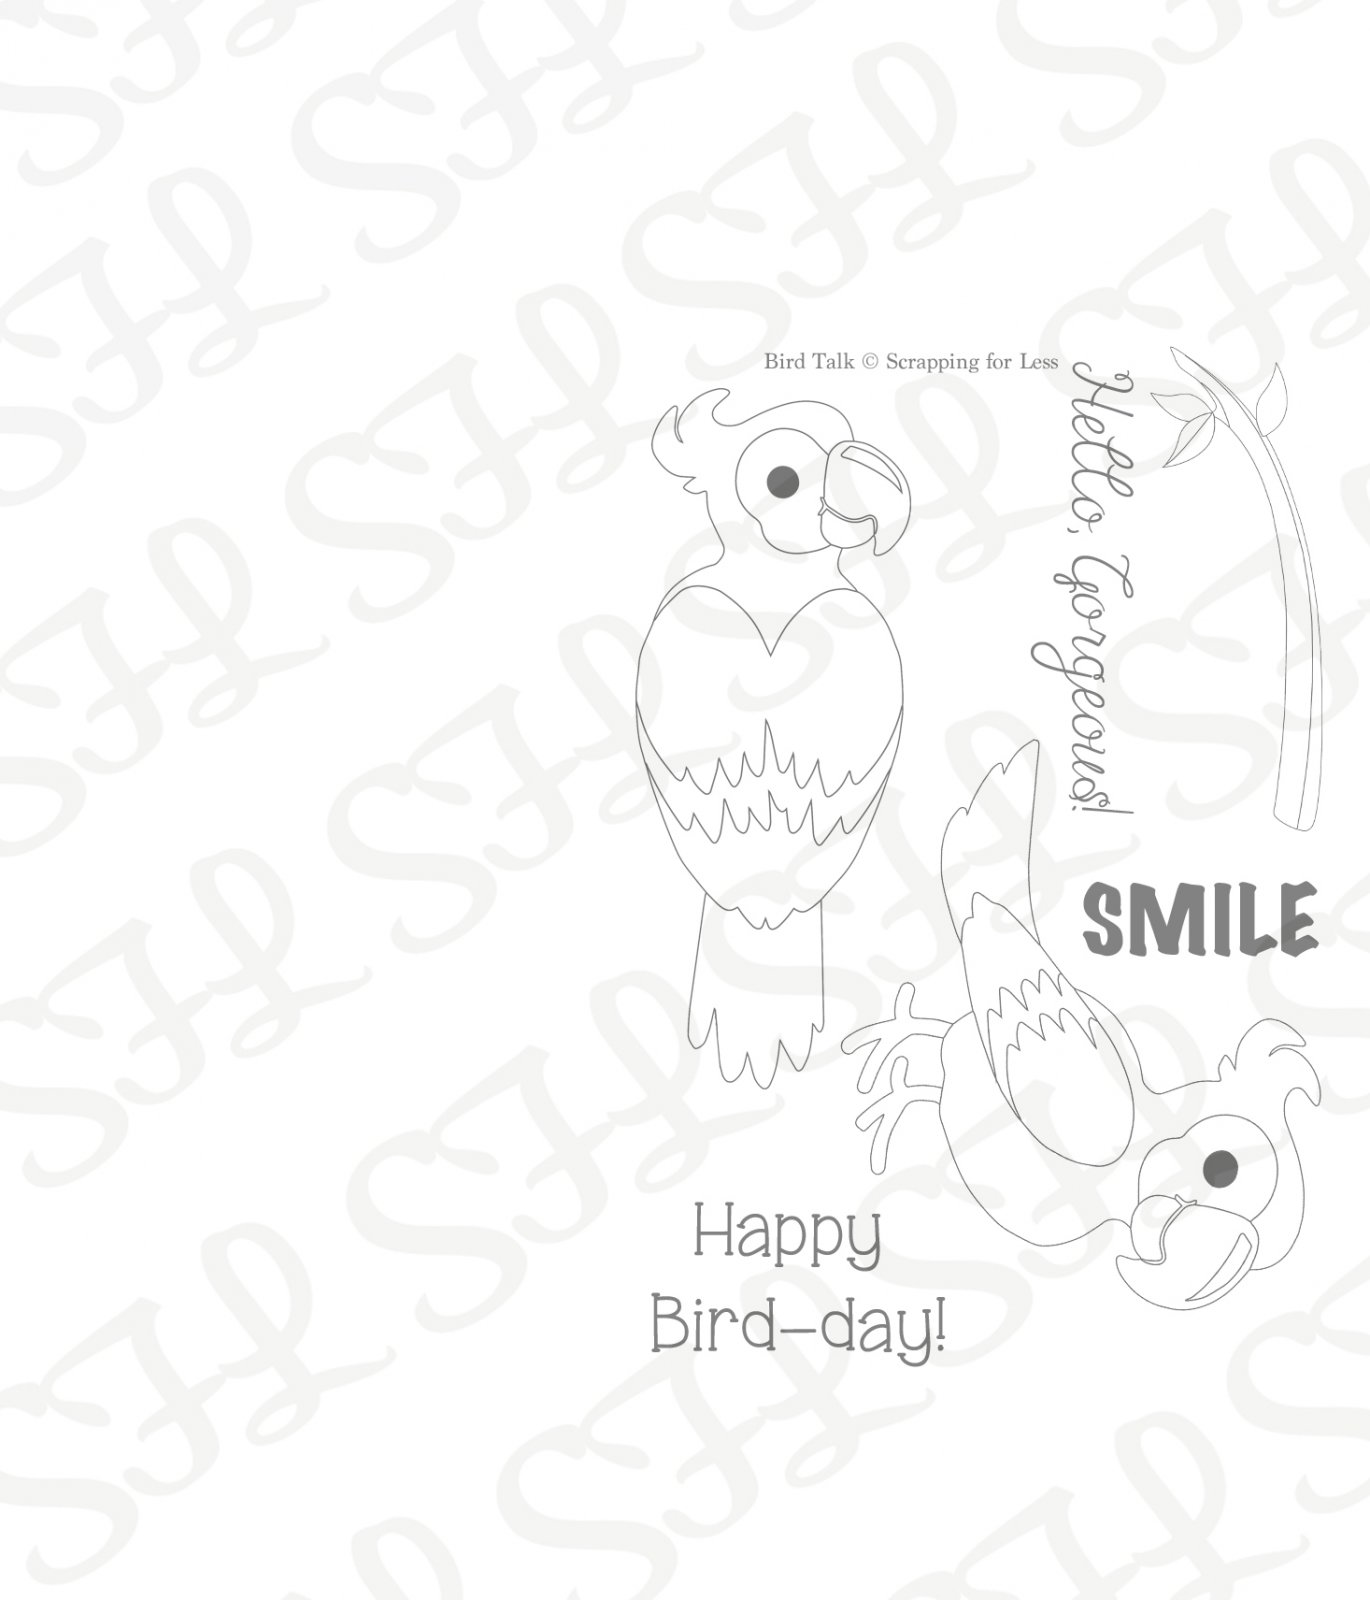 Scrapping for Less Clear Stamp 3x4 Bird Talk